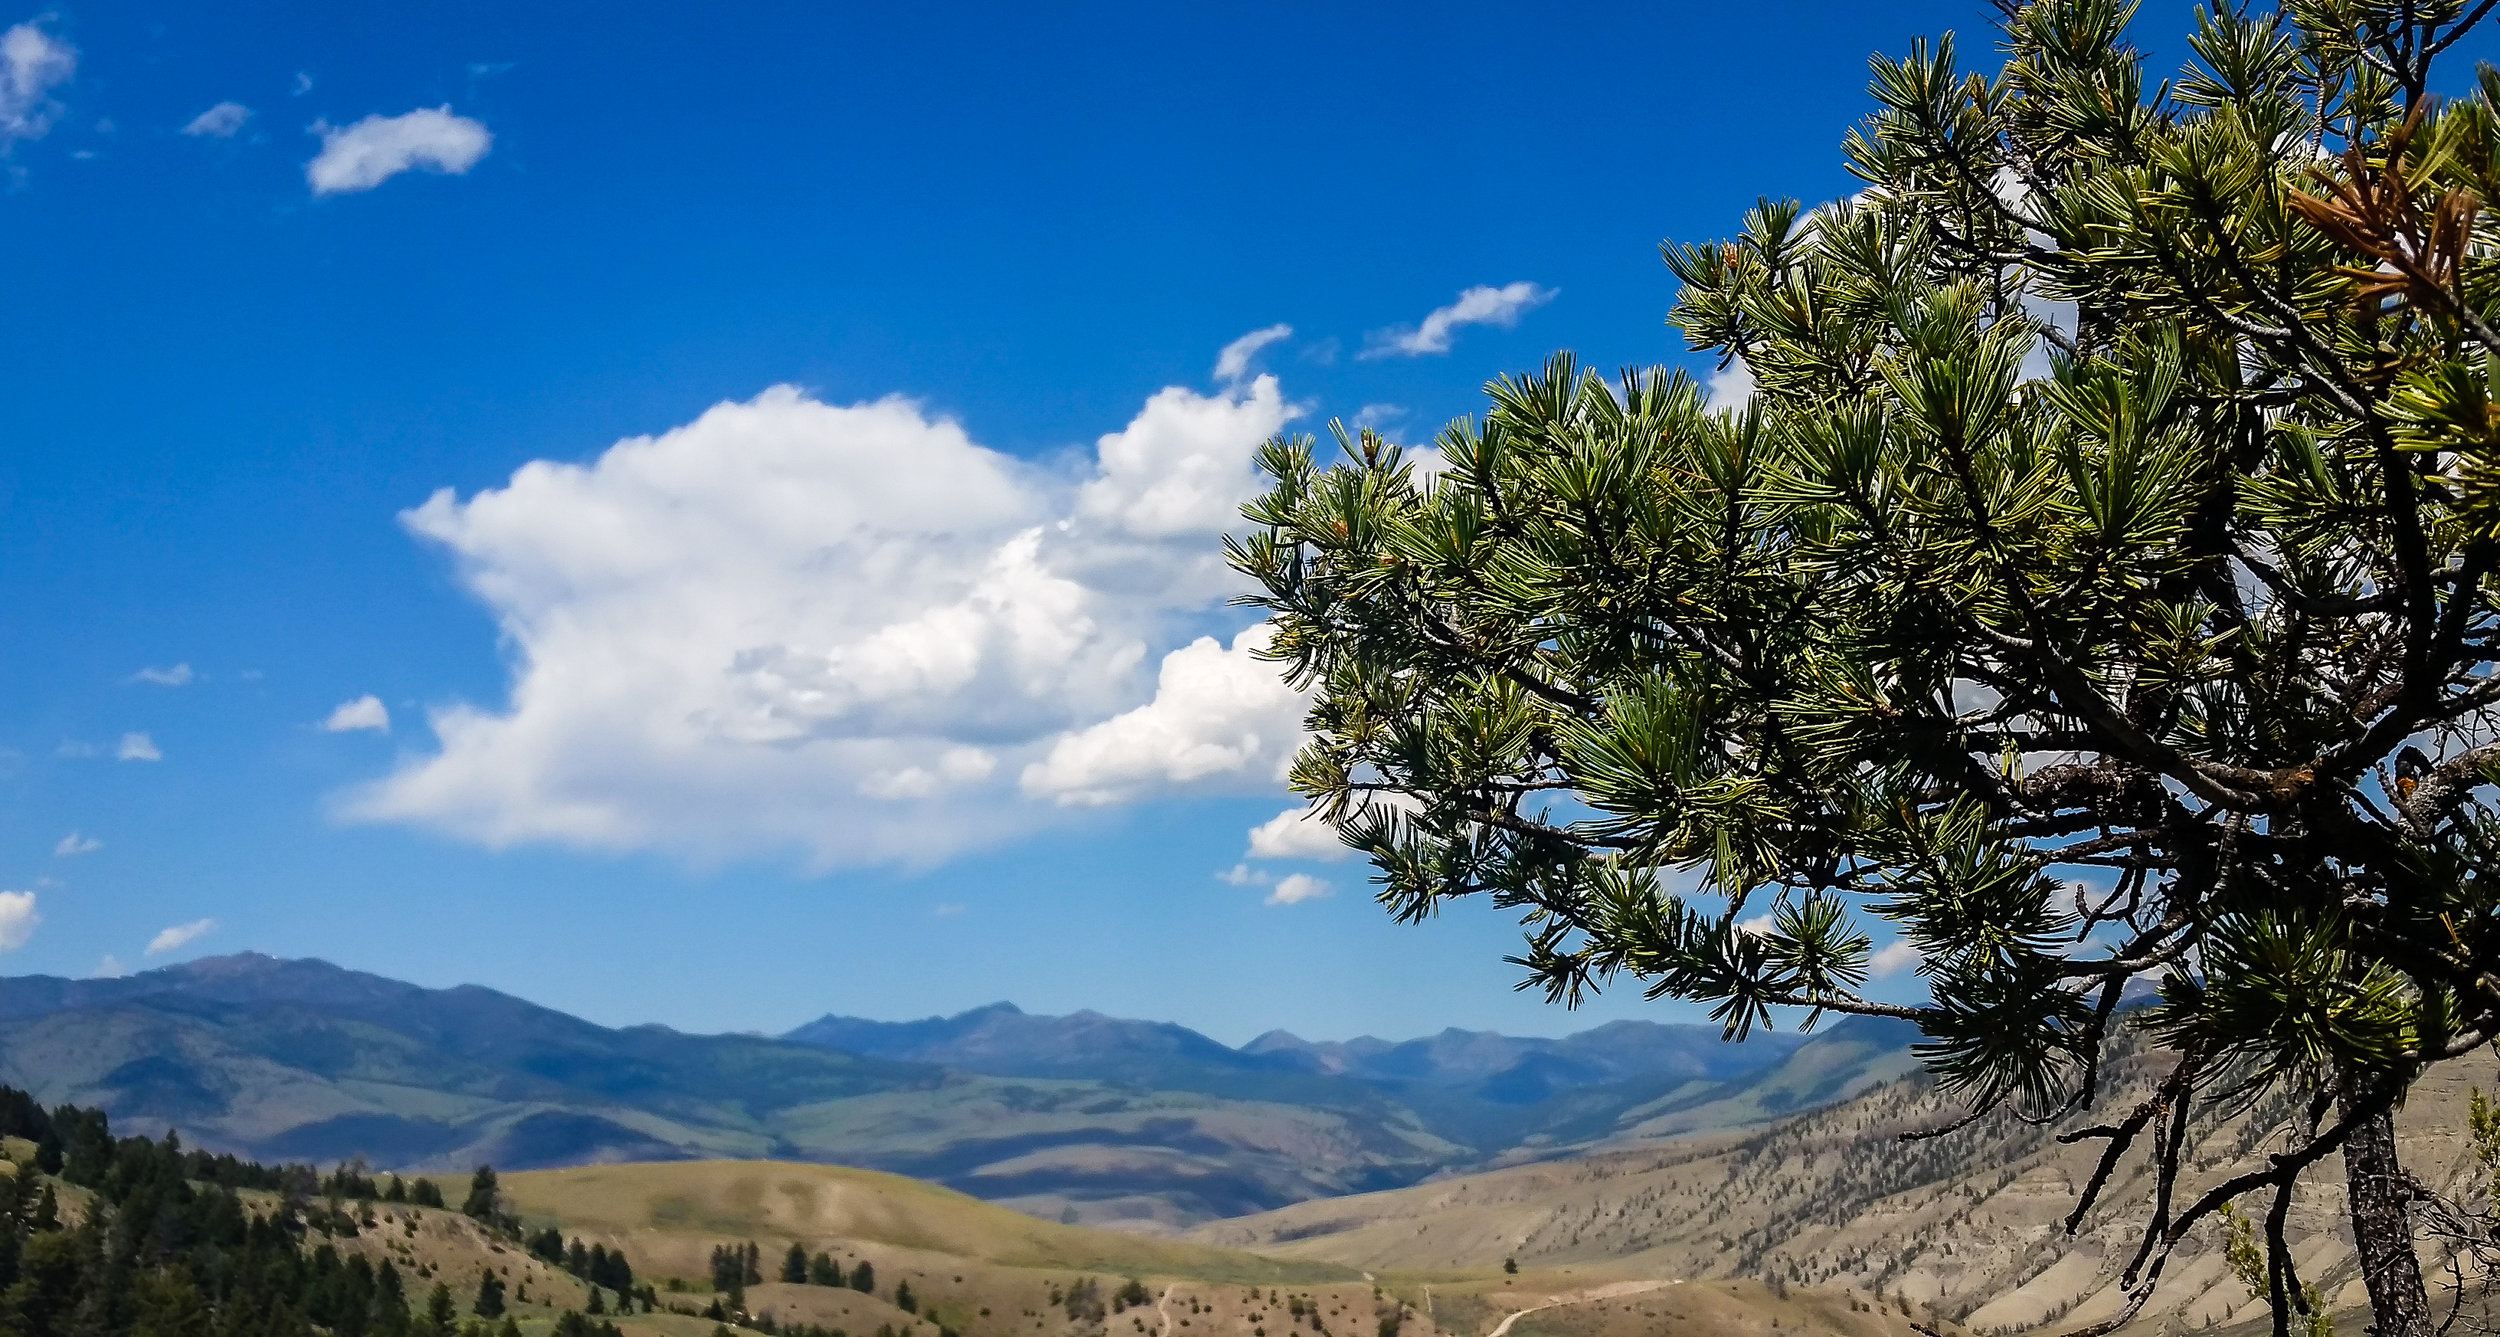 The view from Mammoth Hot Springs.